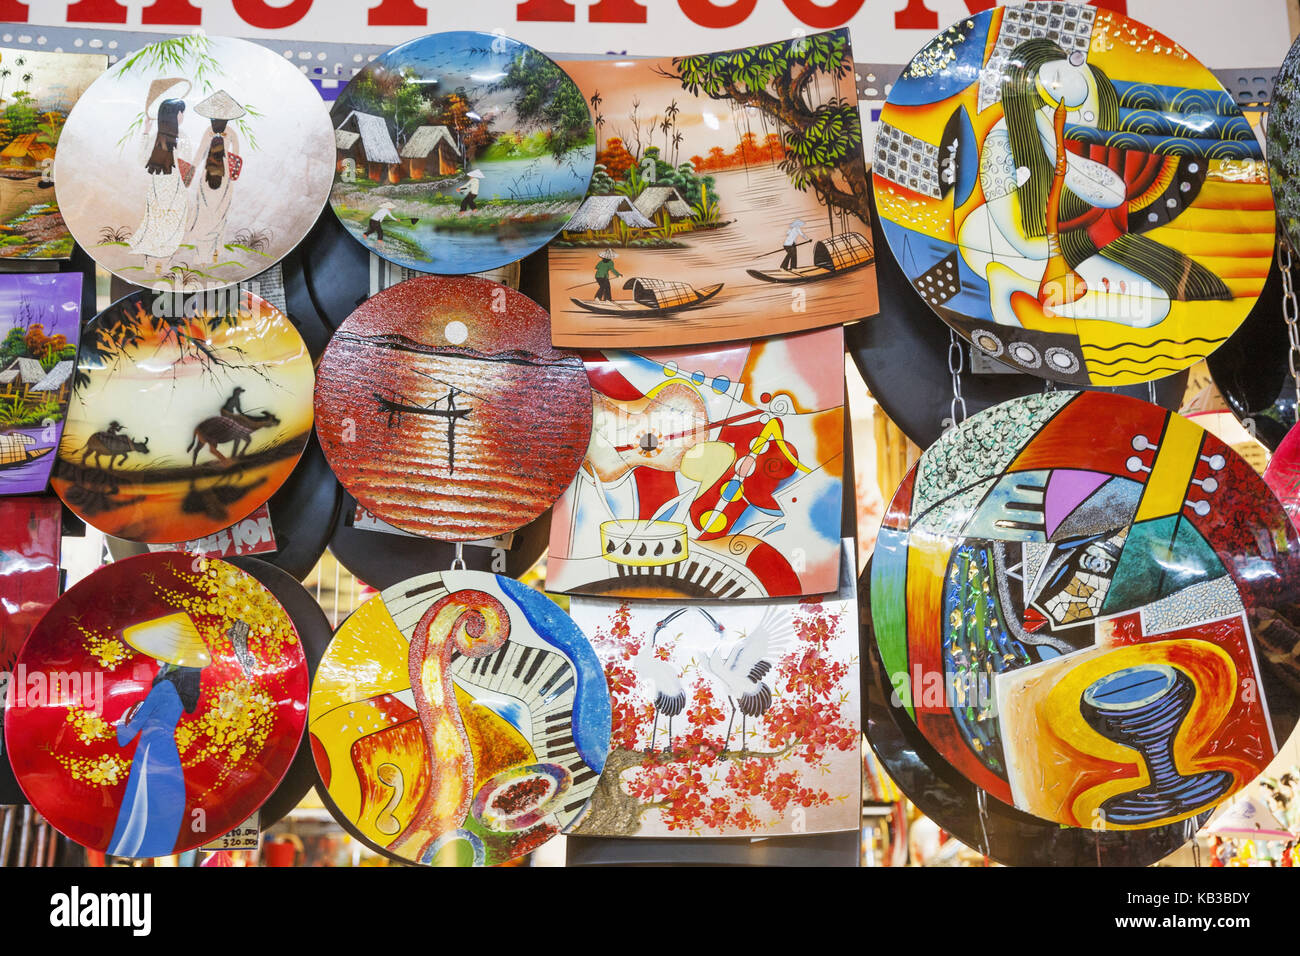 Vietnam, Ho Chi Minh Stadt, Ben Thanh Market, souvenir, sales of painted plates, - Stock Image